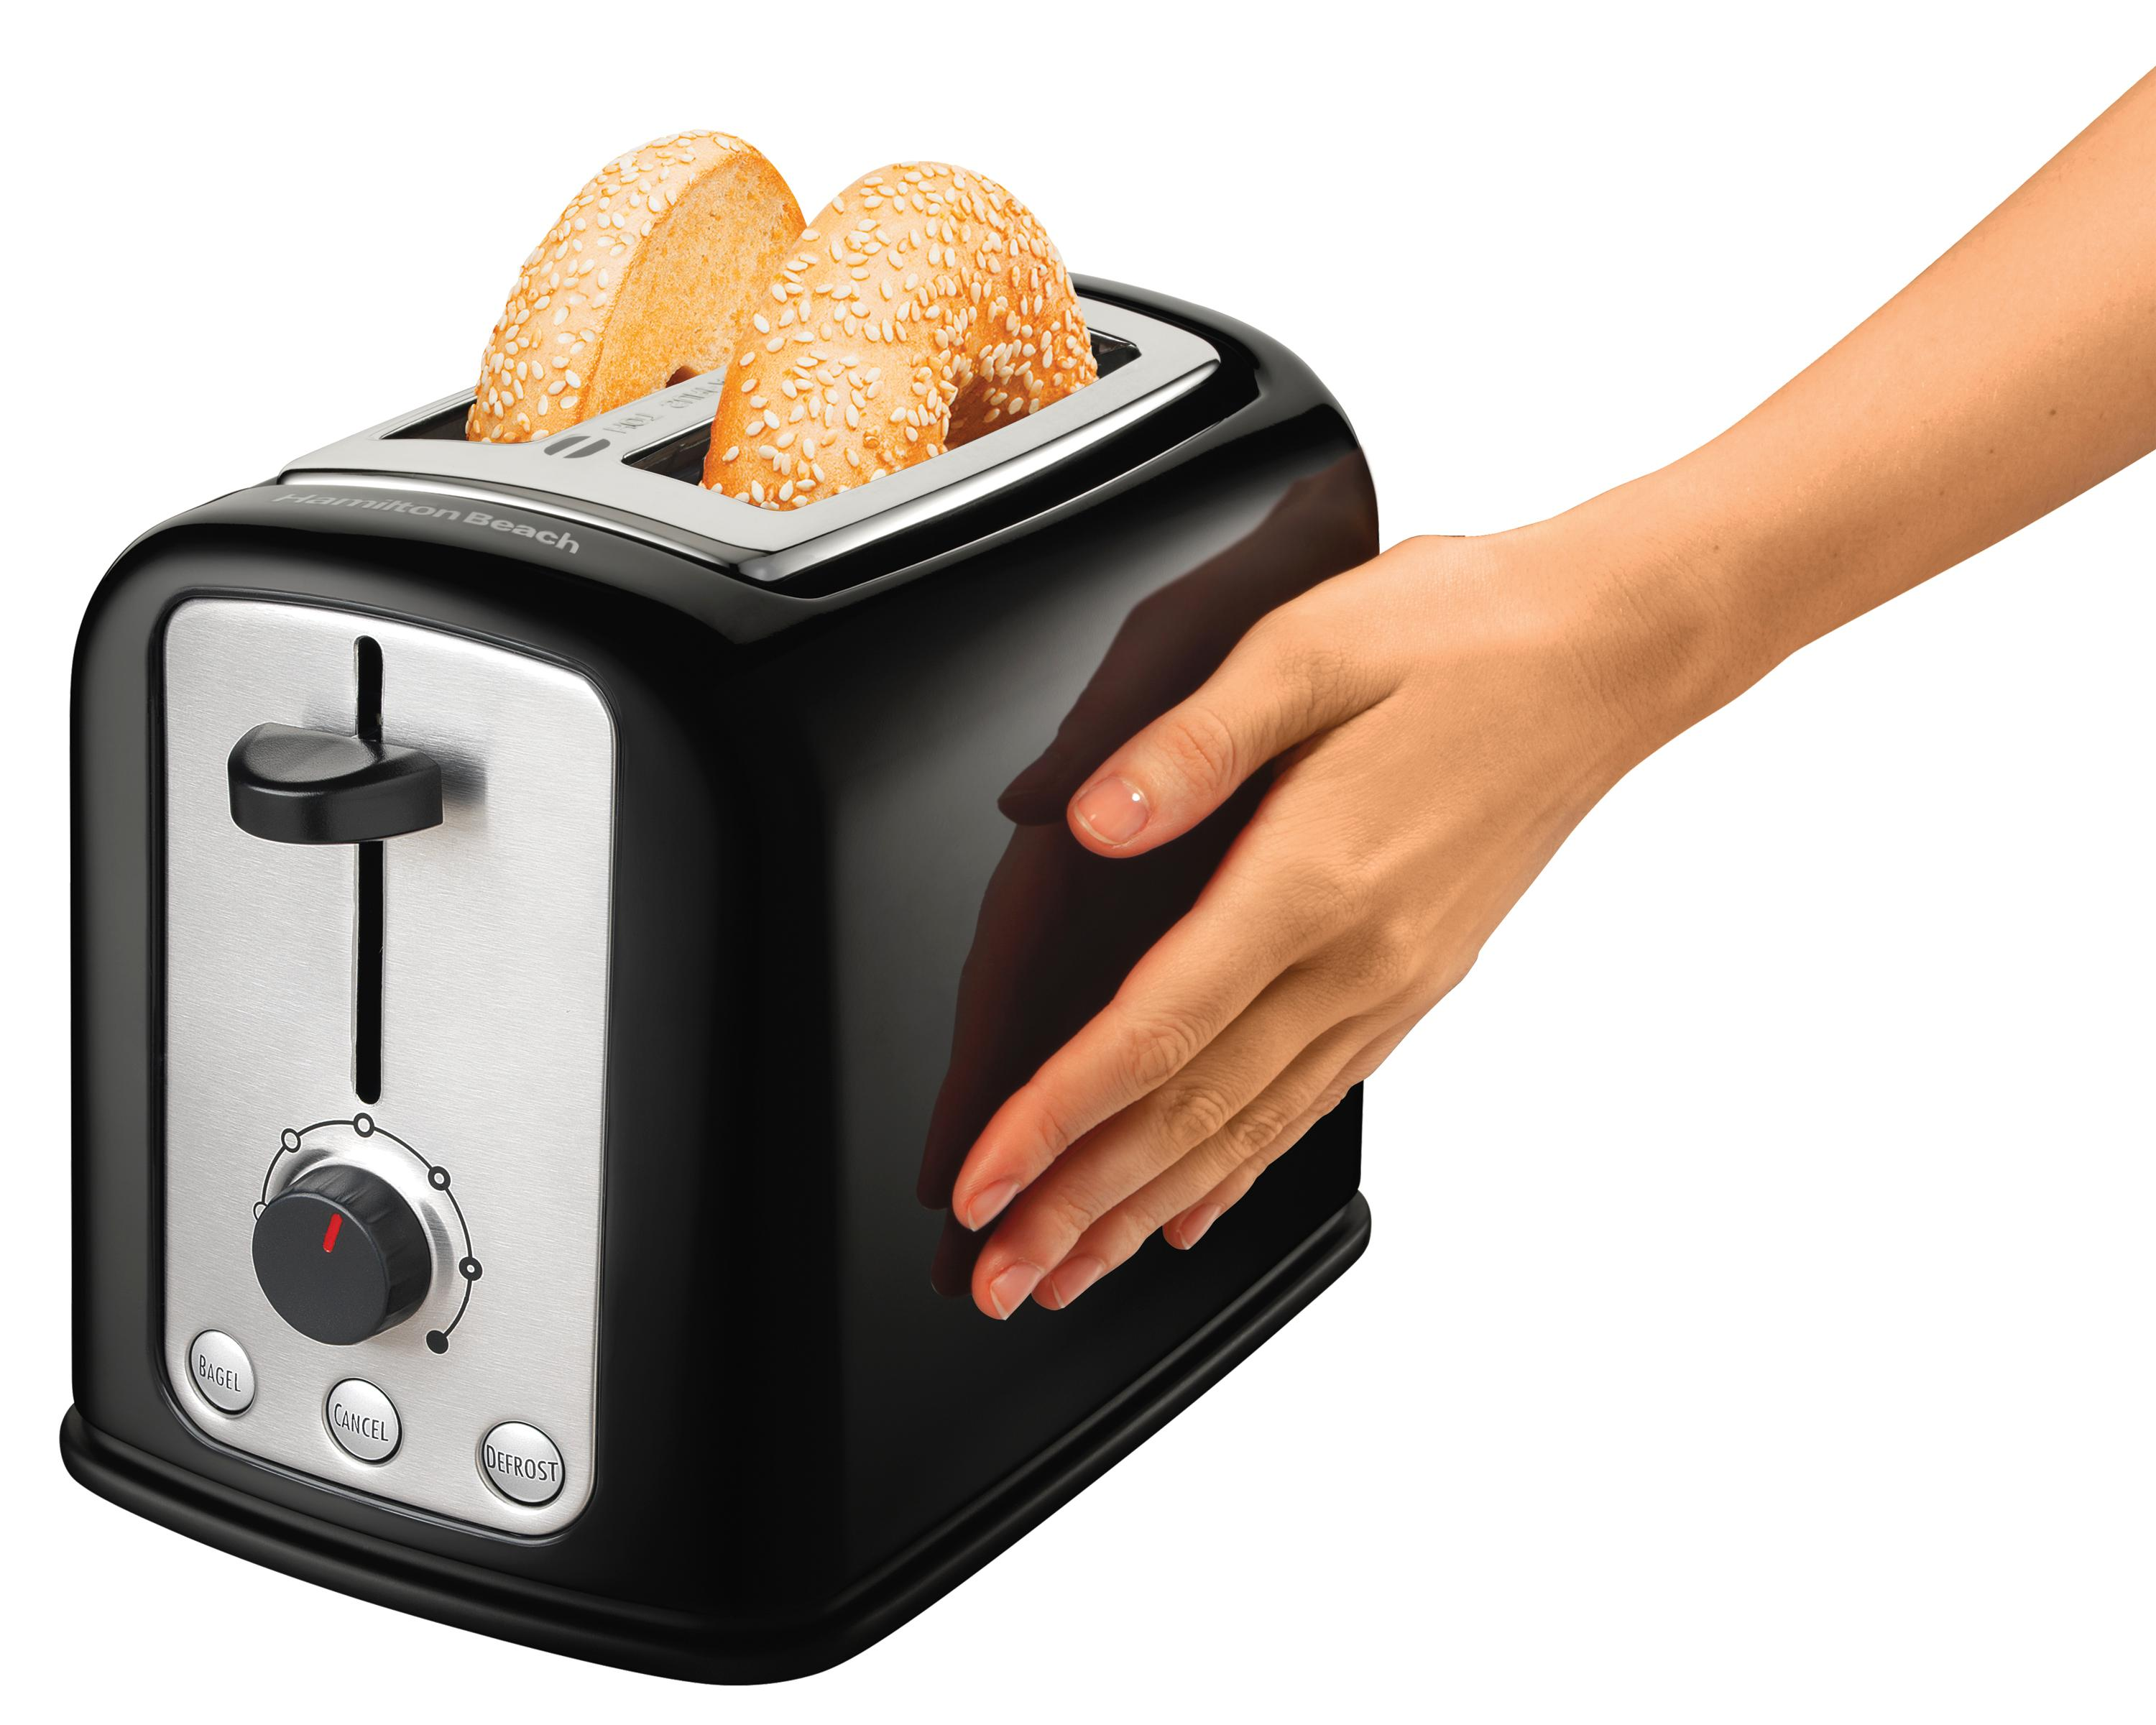 its also and range model best a the s retro can looked expect design buy of available our but stunning delivers great toaster in slice smeg certainly chrome from toasters you test it